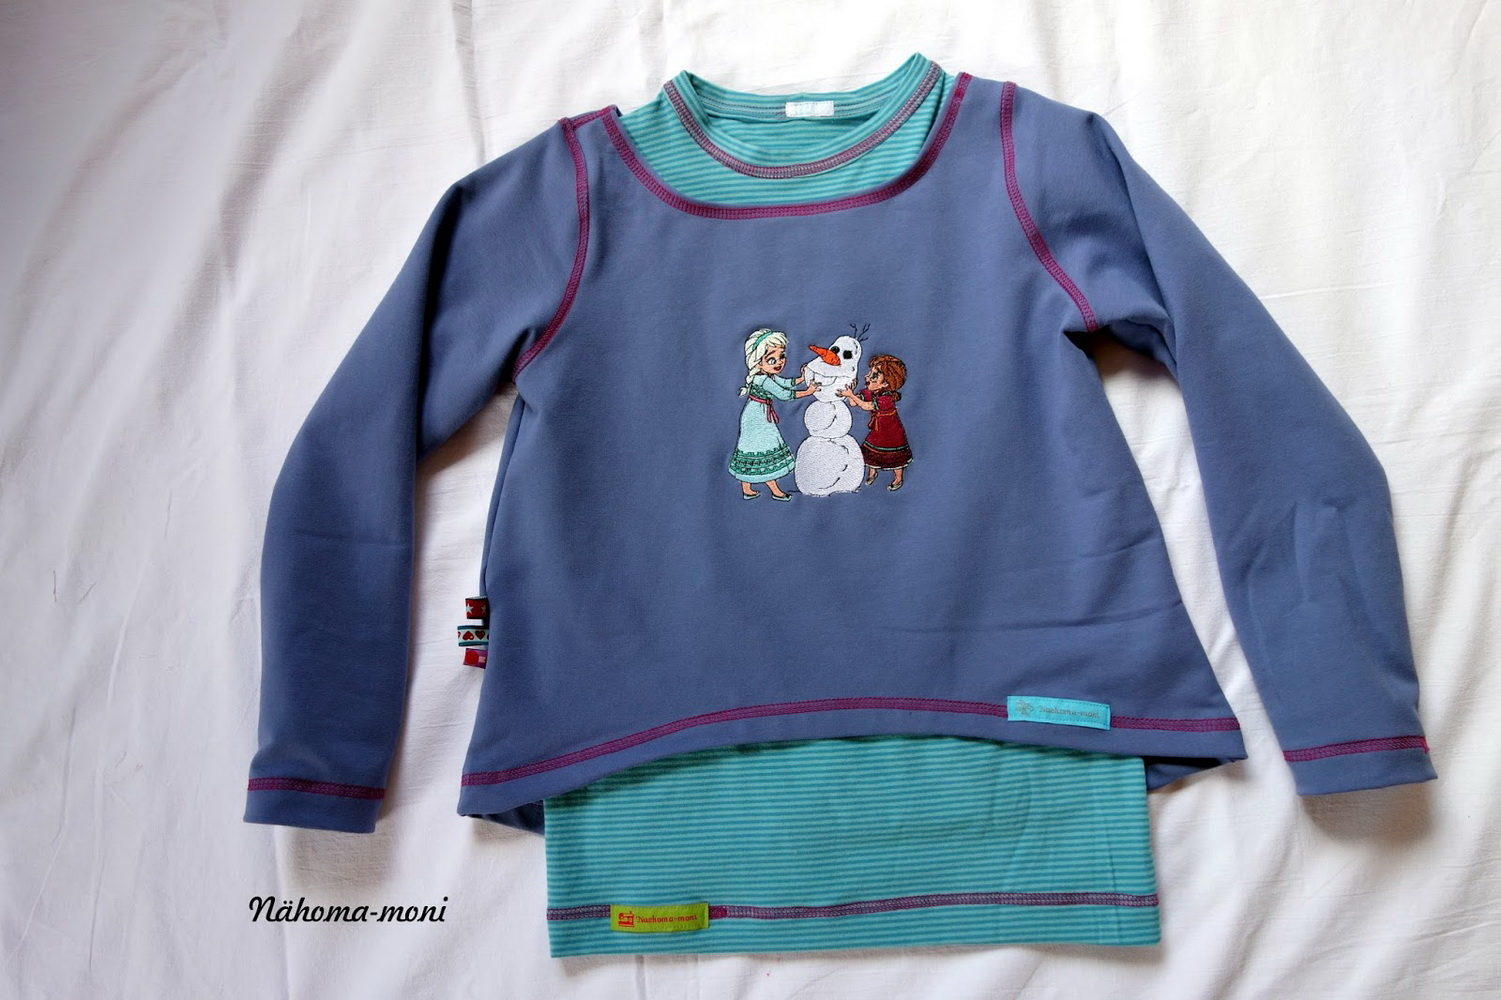 Blue shirt with embroidered Making snowman design